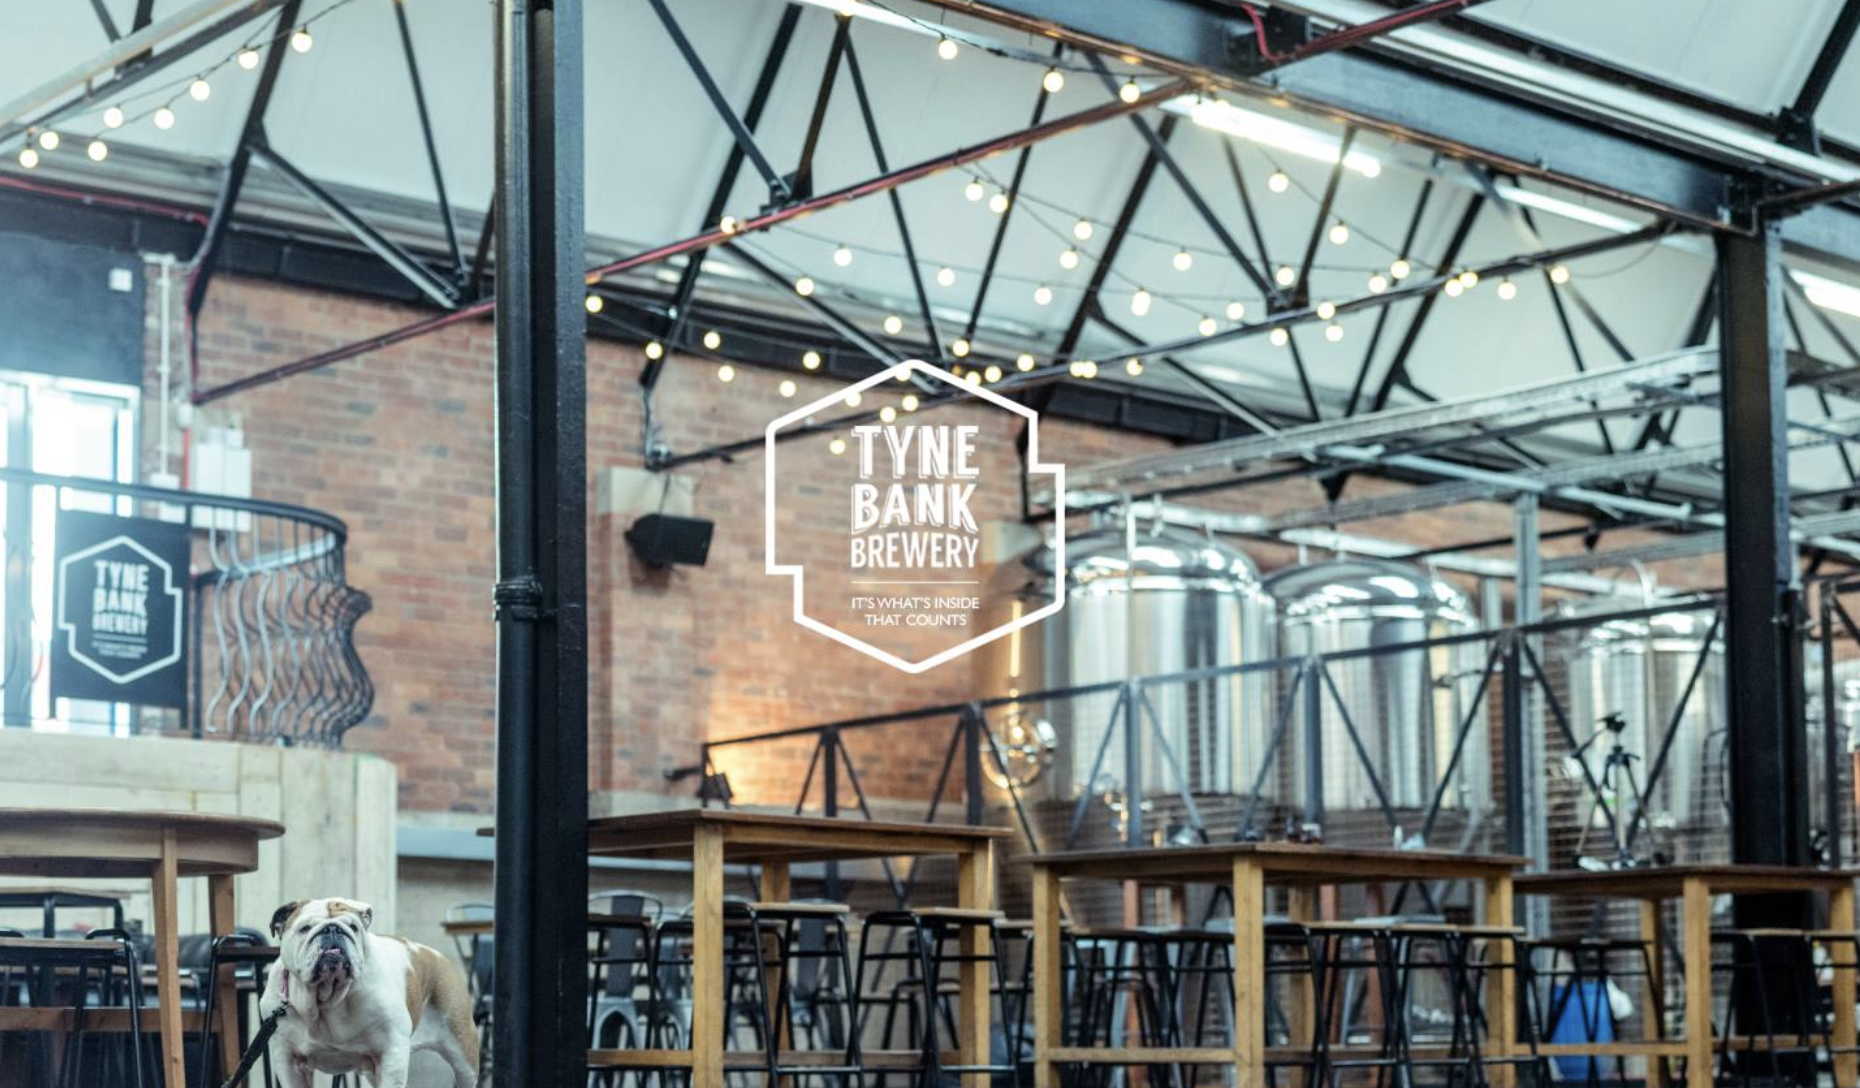 tyne bank brewery vegan